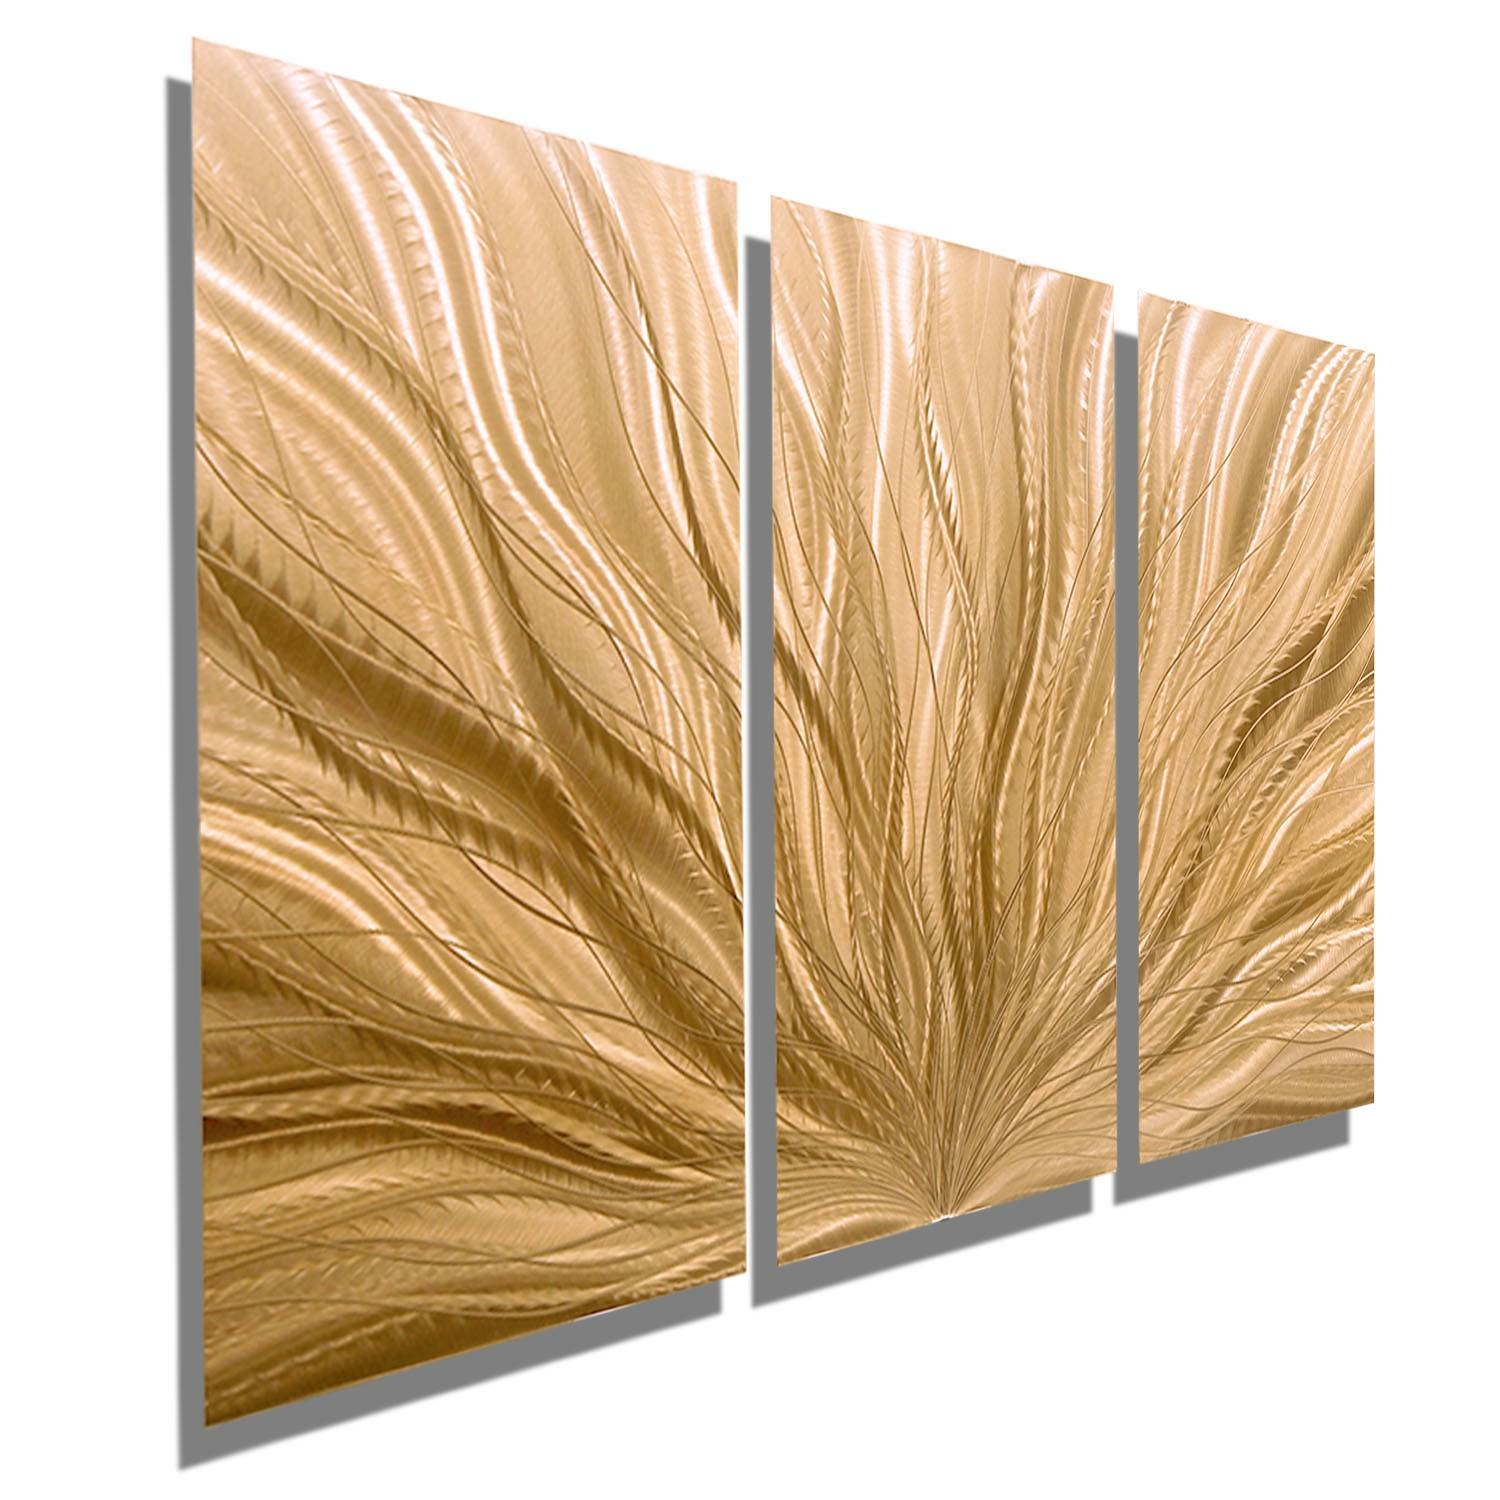 Copper Plumage 3 – Three Panel Light Copper Contemporary Metal Intended For 2018 Three Panel Wall Art (View 13 of 20)